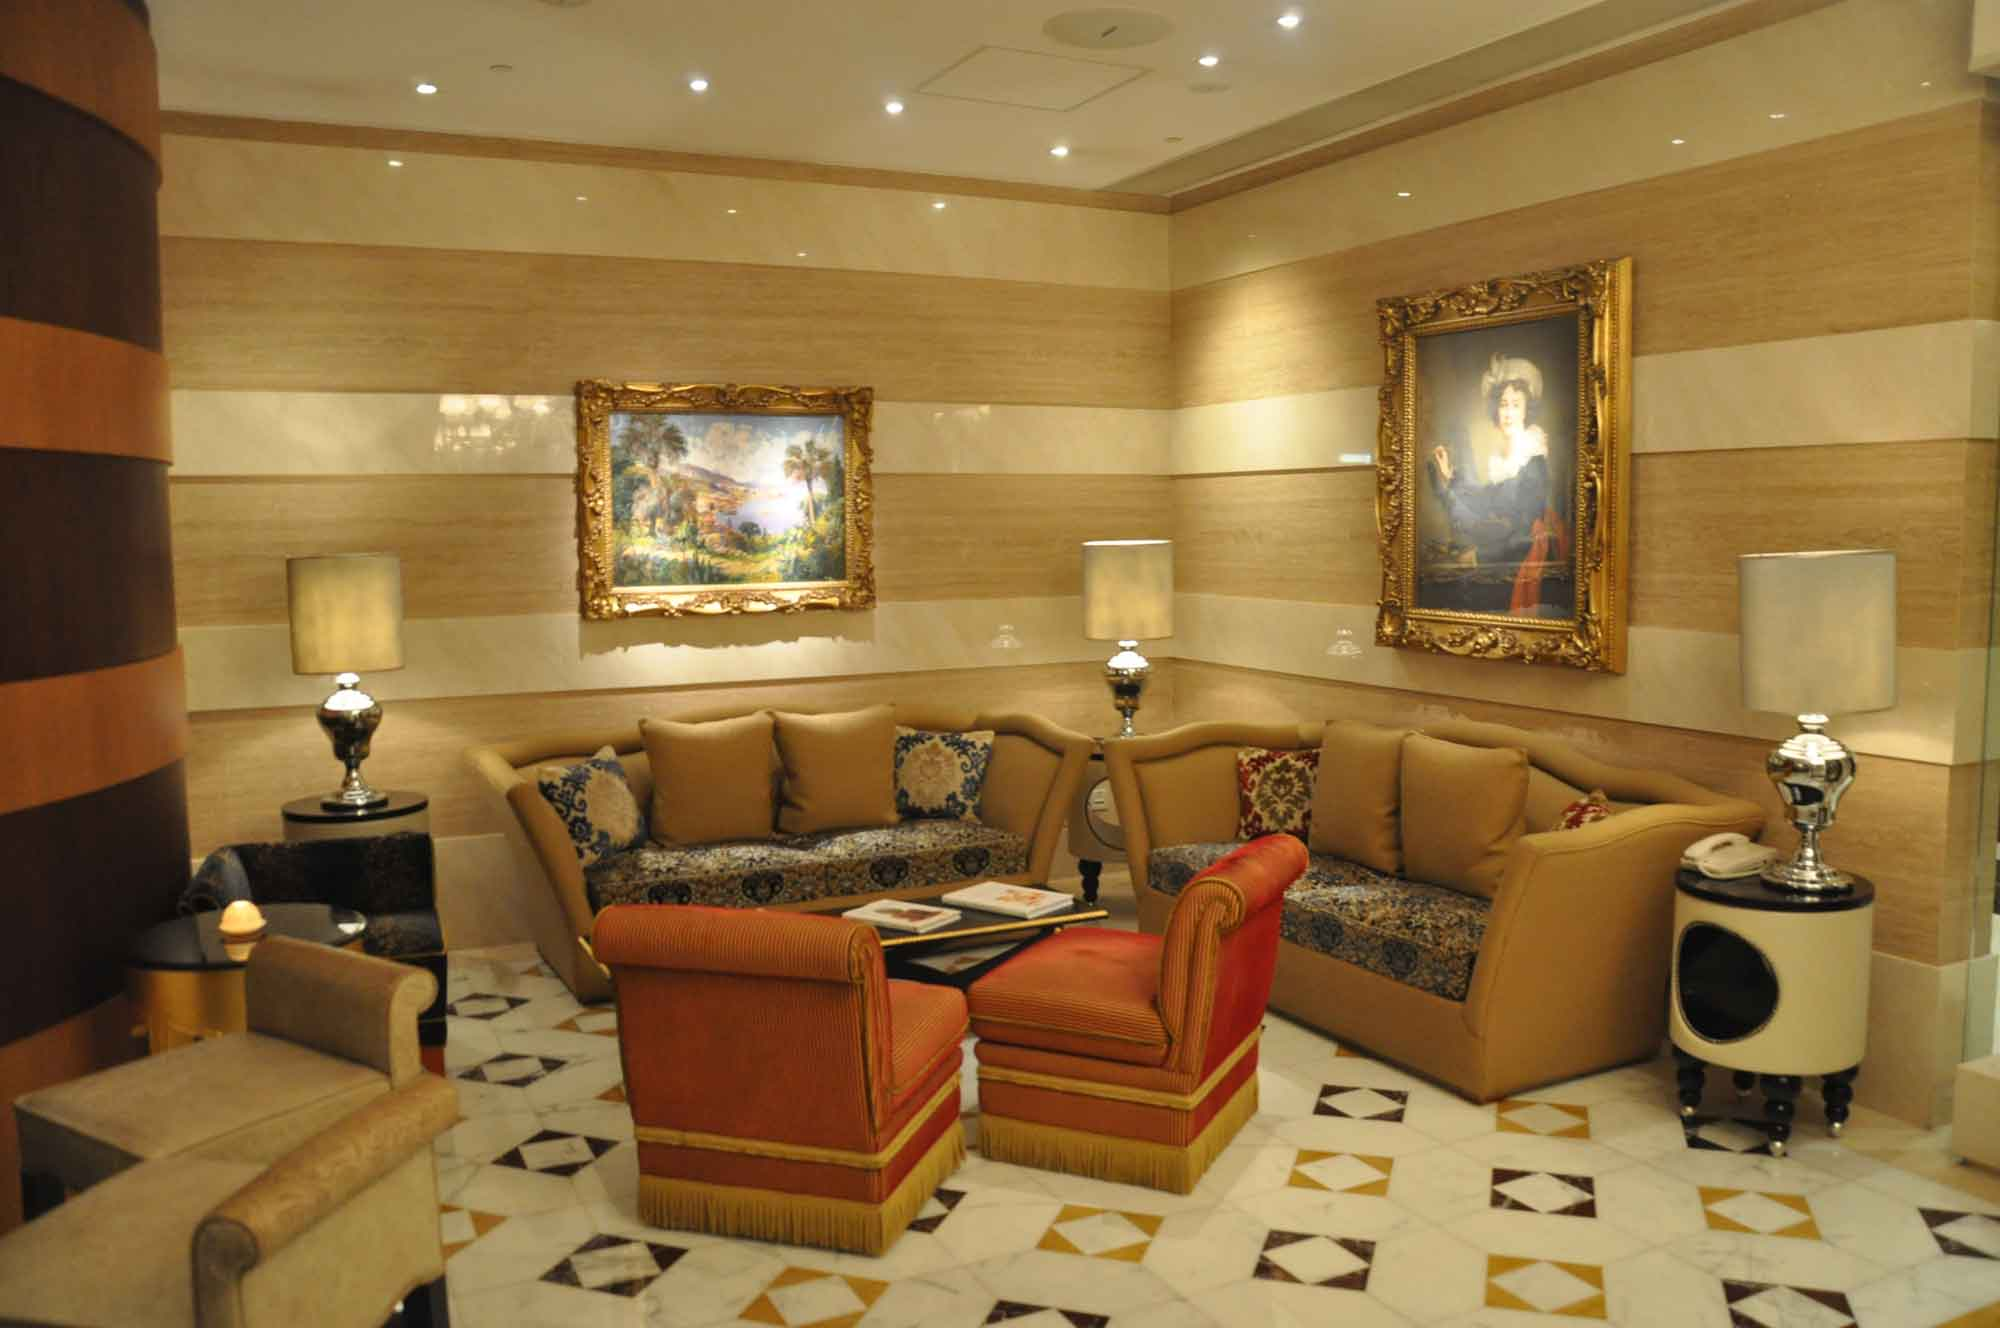 Casa Don Alfonso Macau lounge section